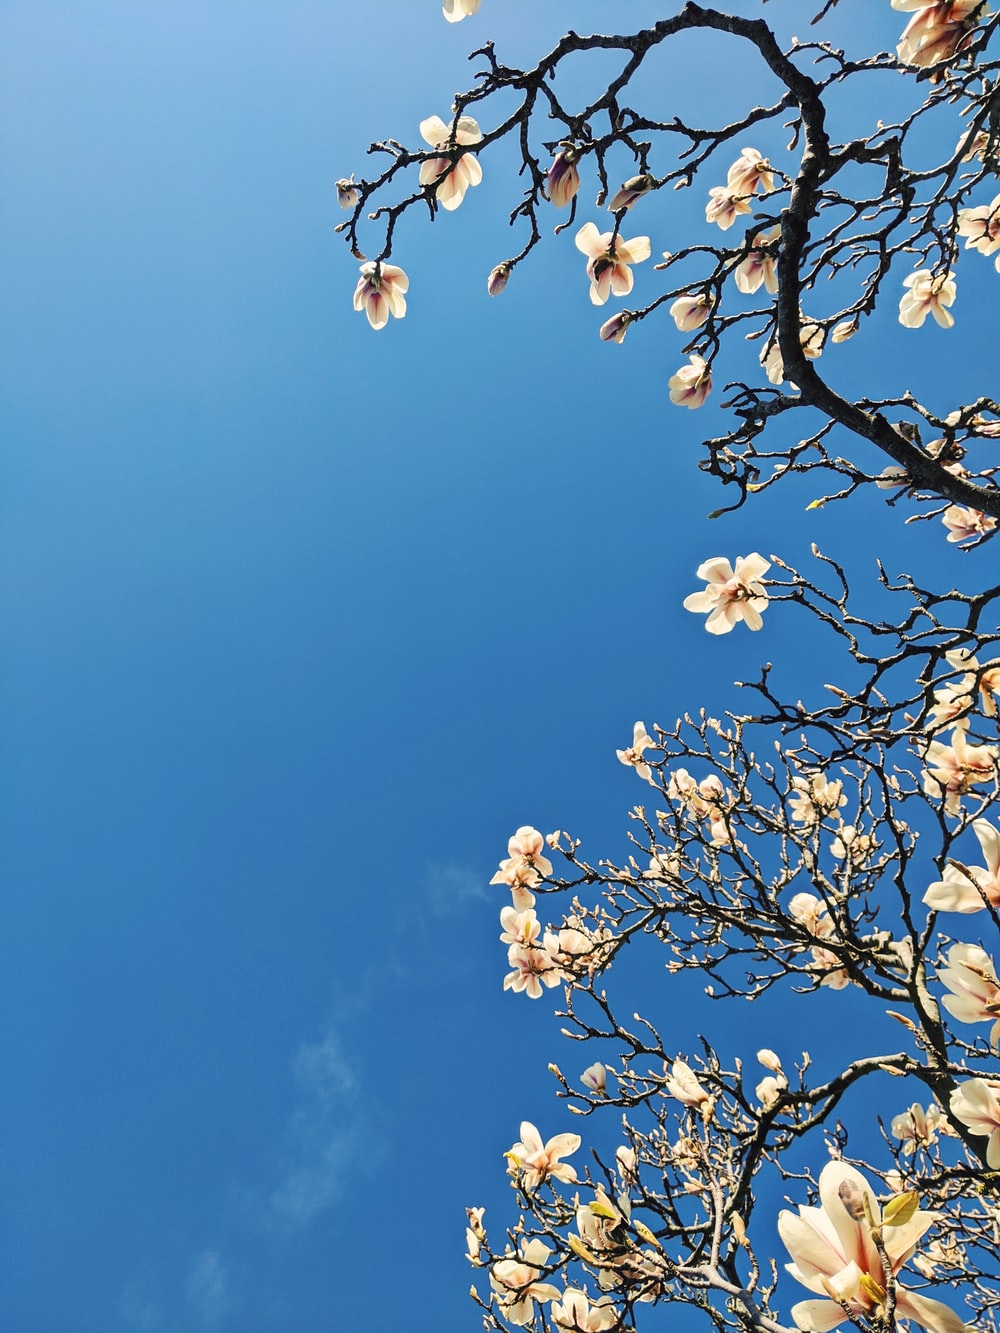 white flowers on tree branch under blue sky during daytime